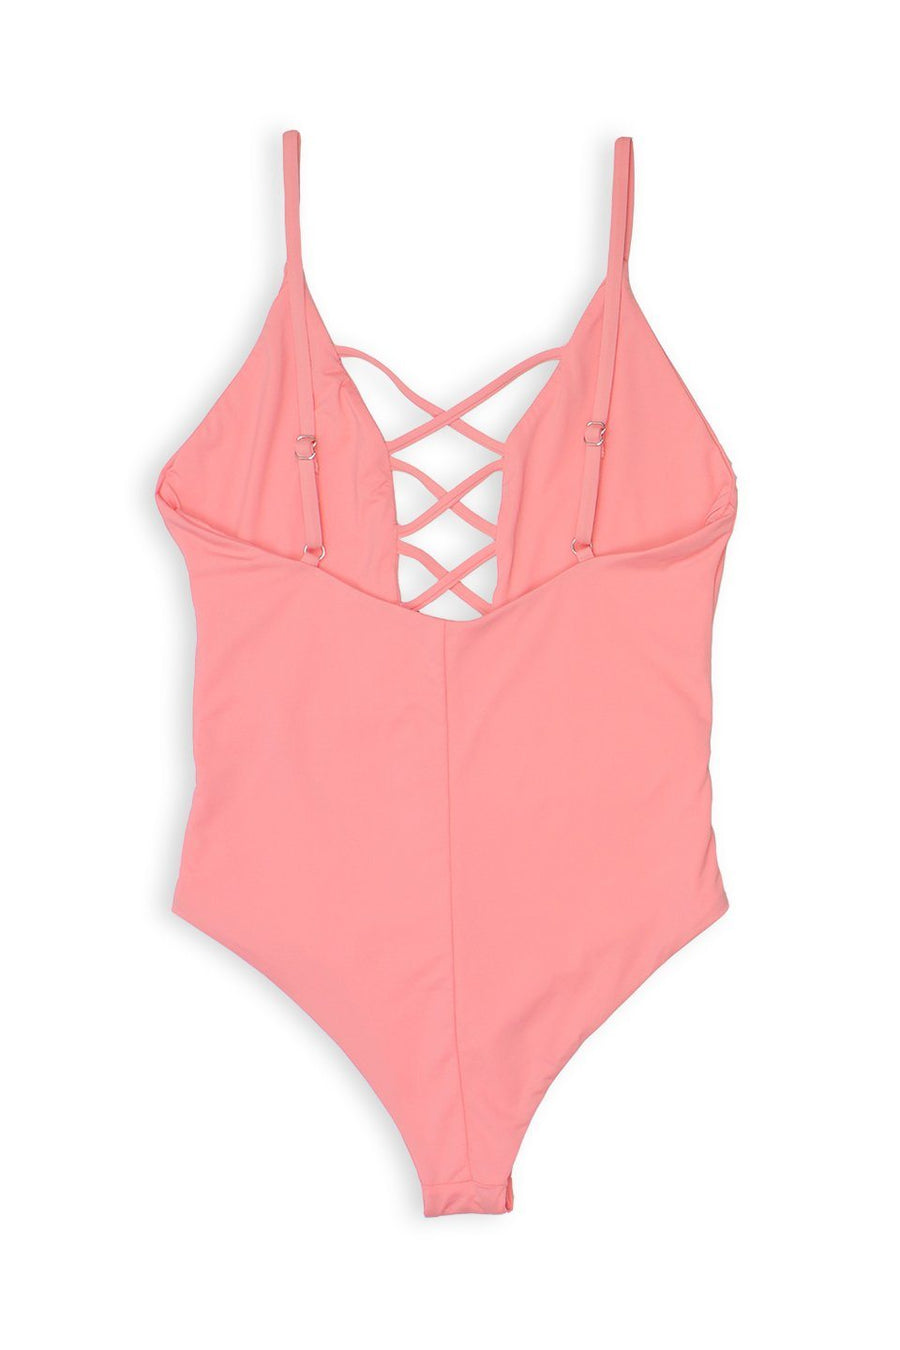 CAGED FRONT MODERATE COVERAGE ONE PIECE - CORALFront View